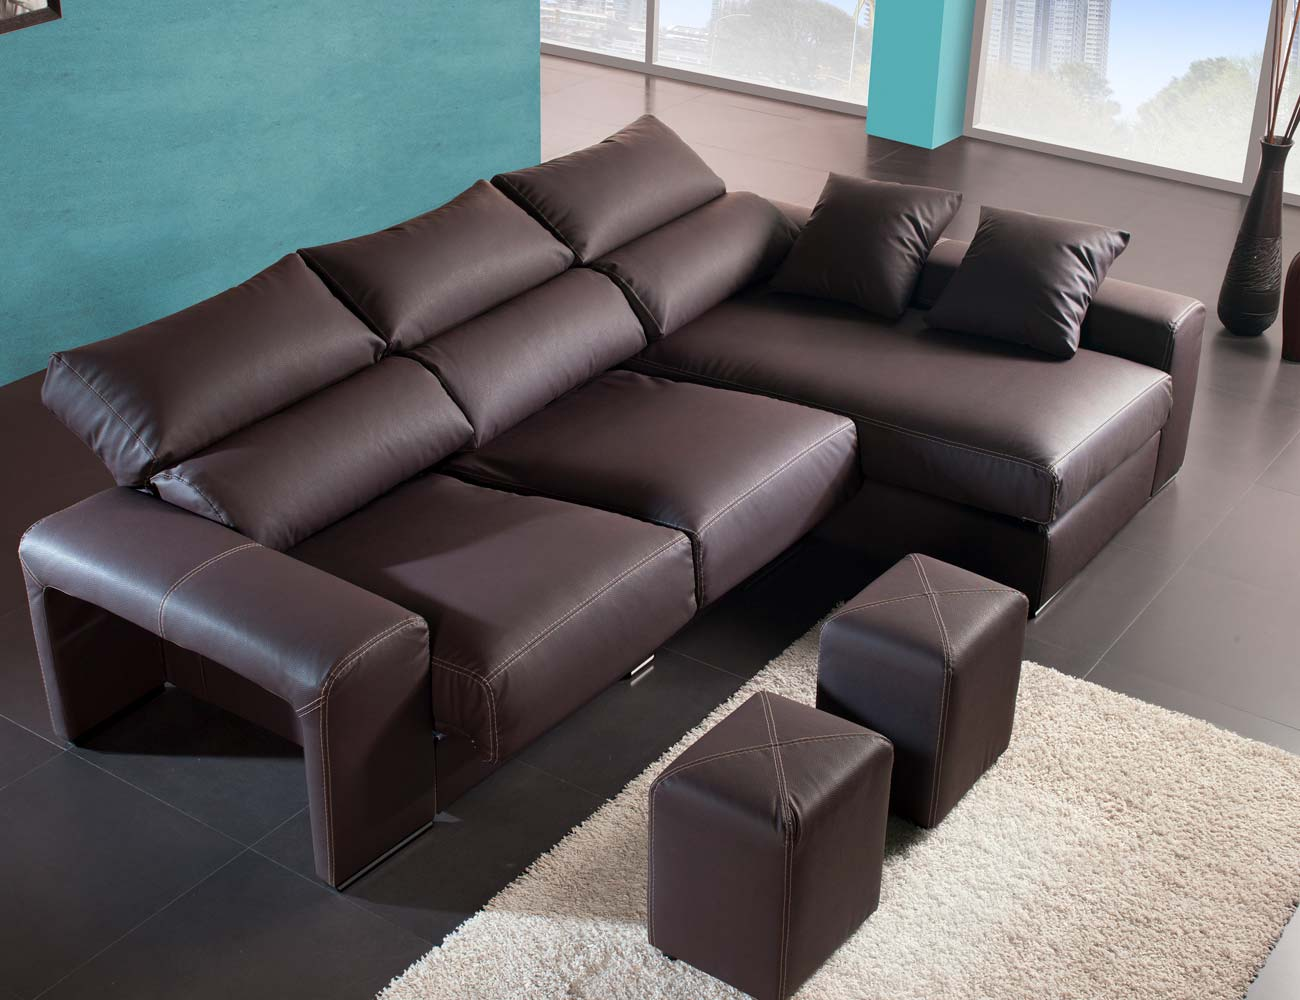 Sofa chaiselongue moderno polipiel chocolate poufs taburetes36